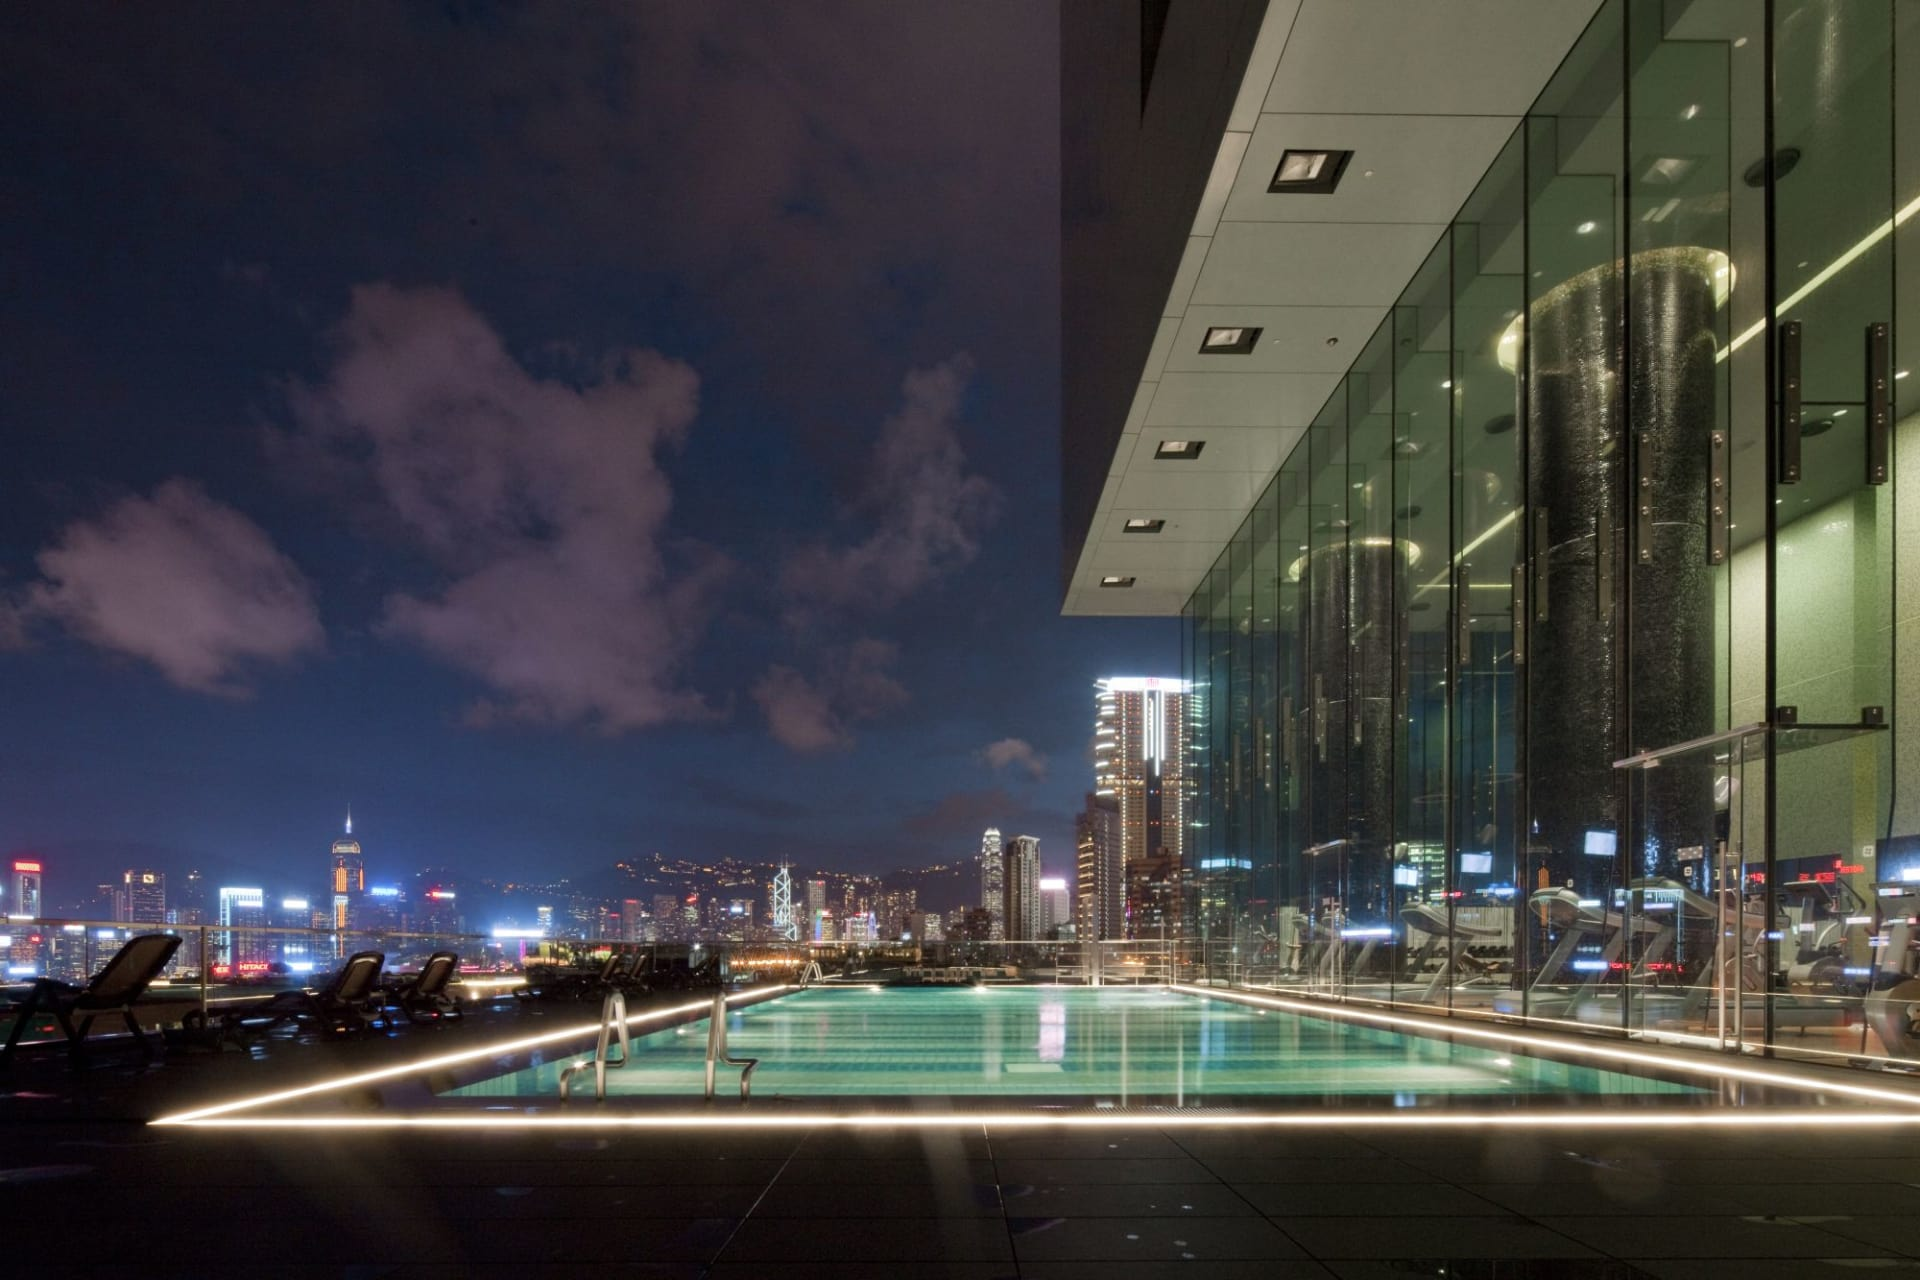 pool: Outdoor Swimming Pool   by night